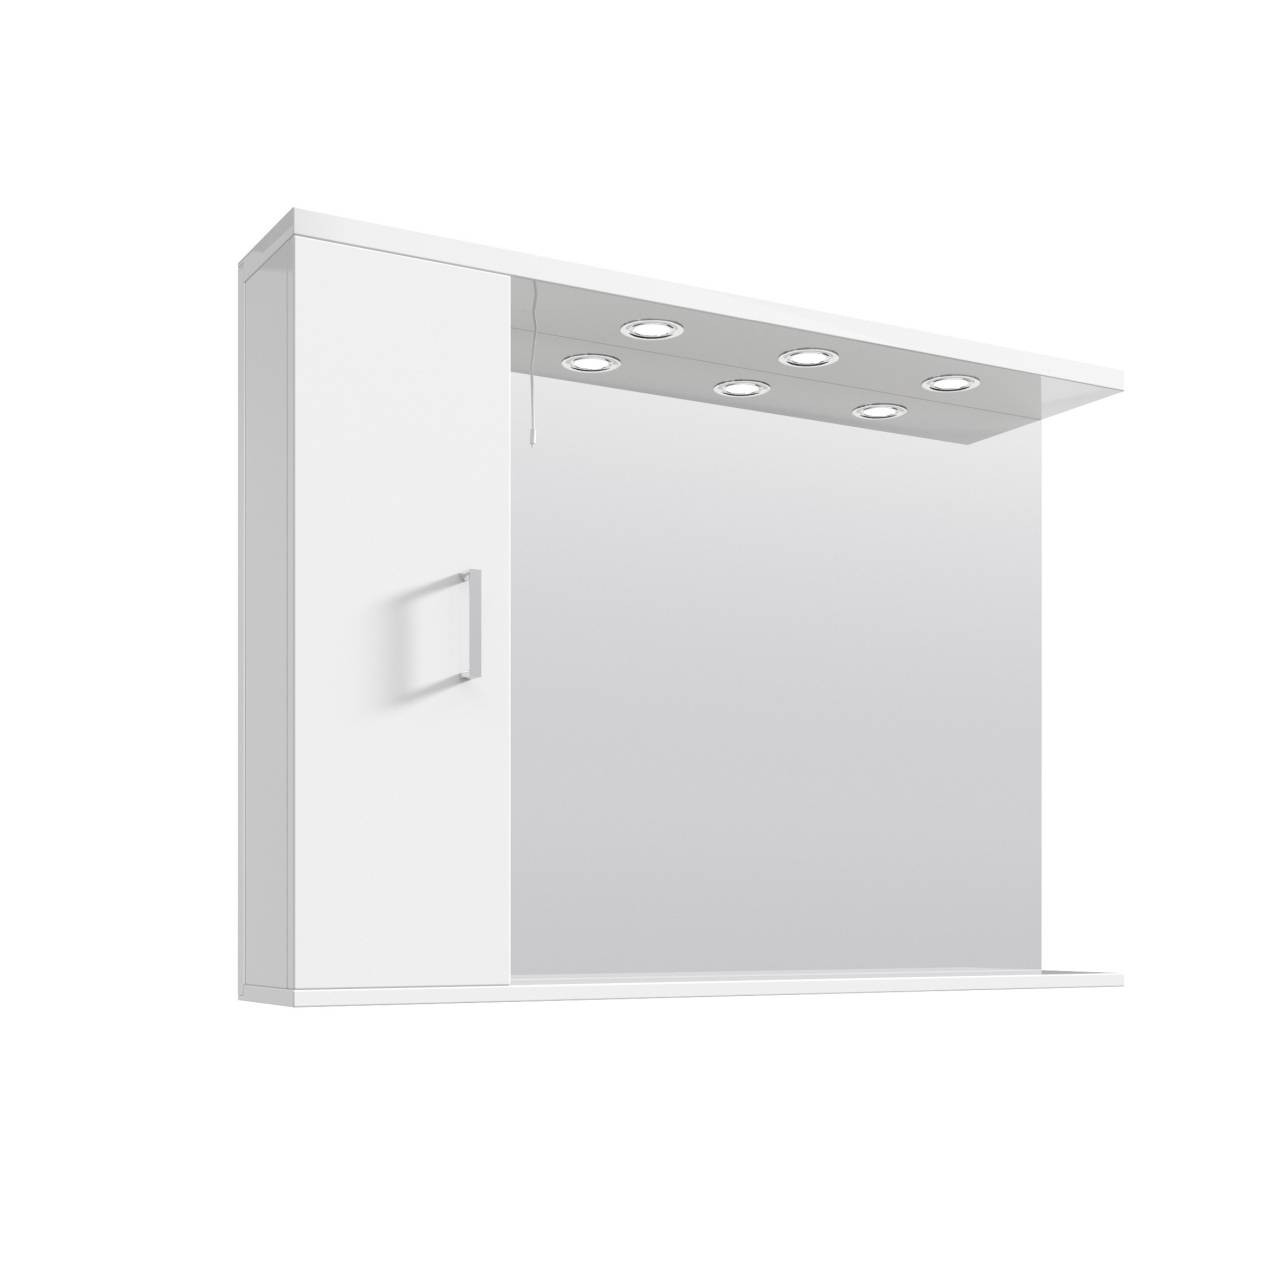 Premier Mayford Gloss White 1050mm Mirror with 3 Lights and Storage - PRC116